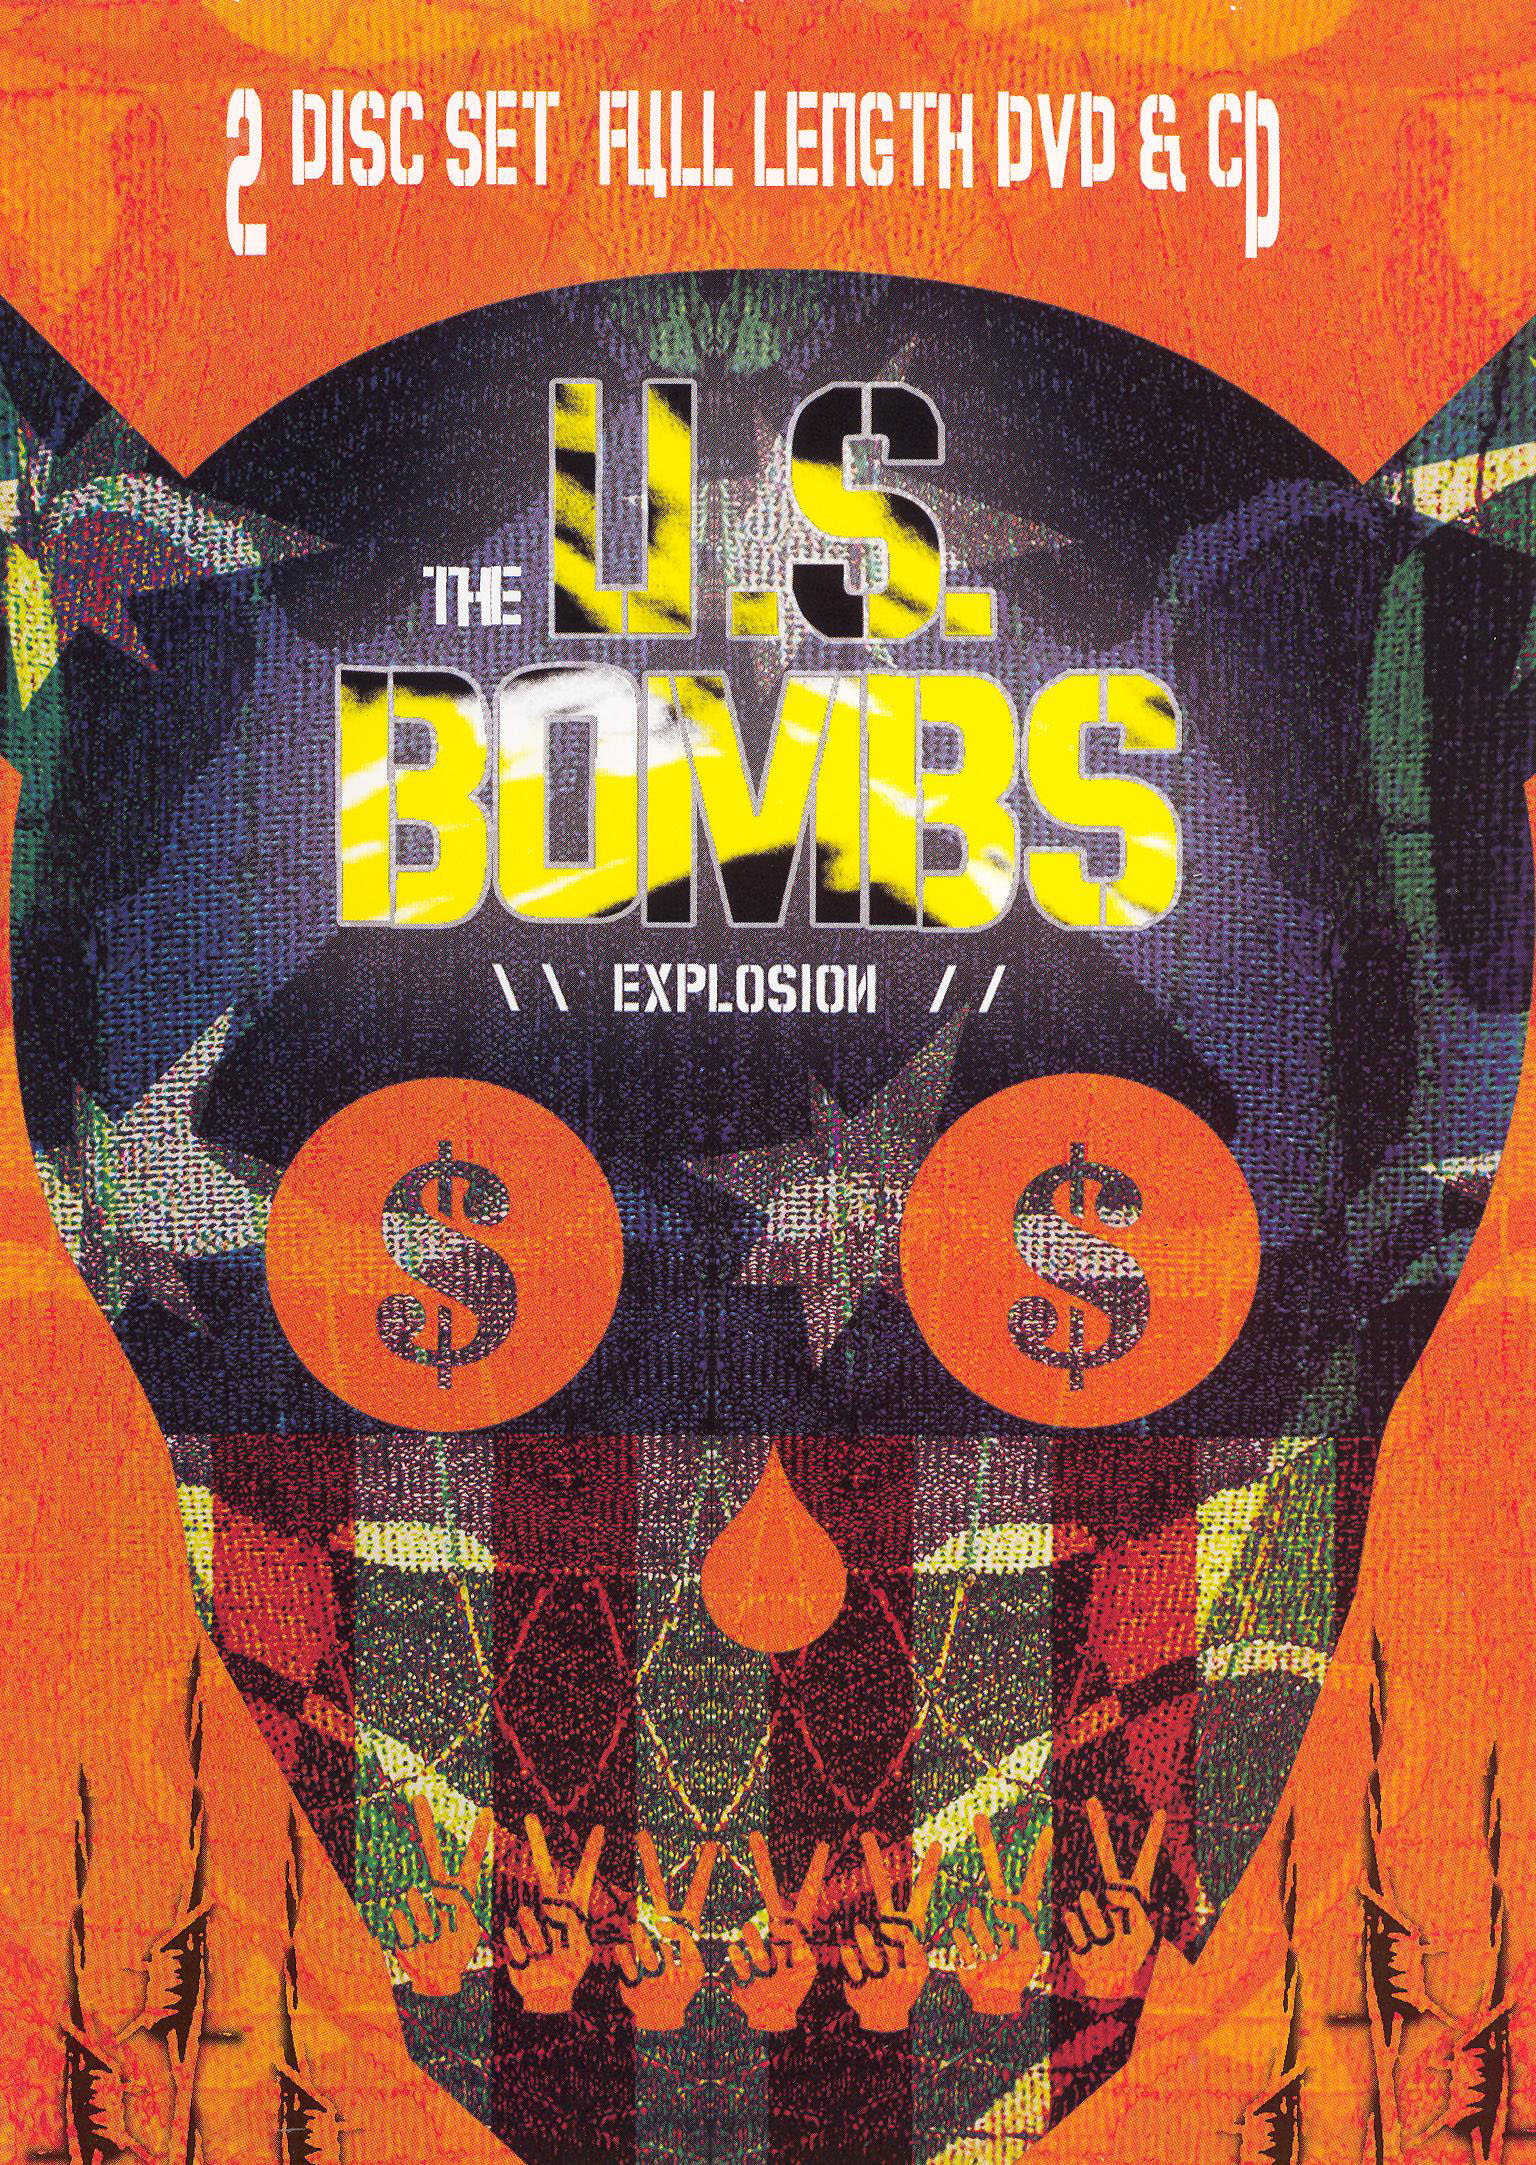 U.S. Bombs: The Explosion